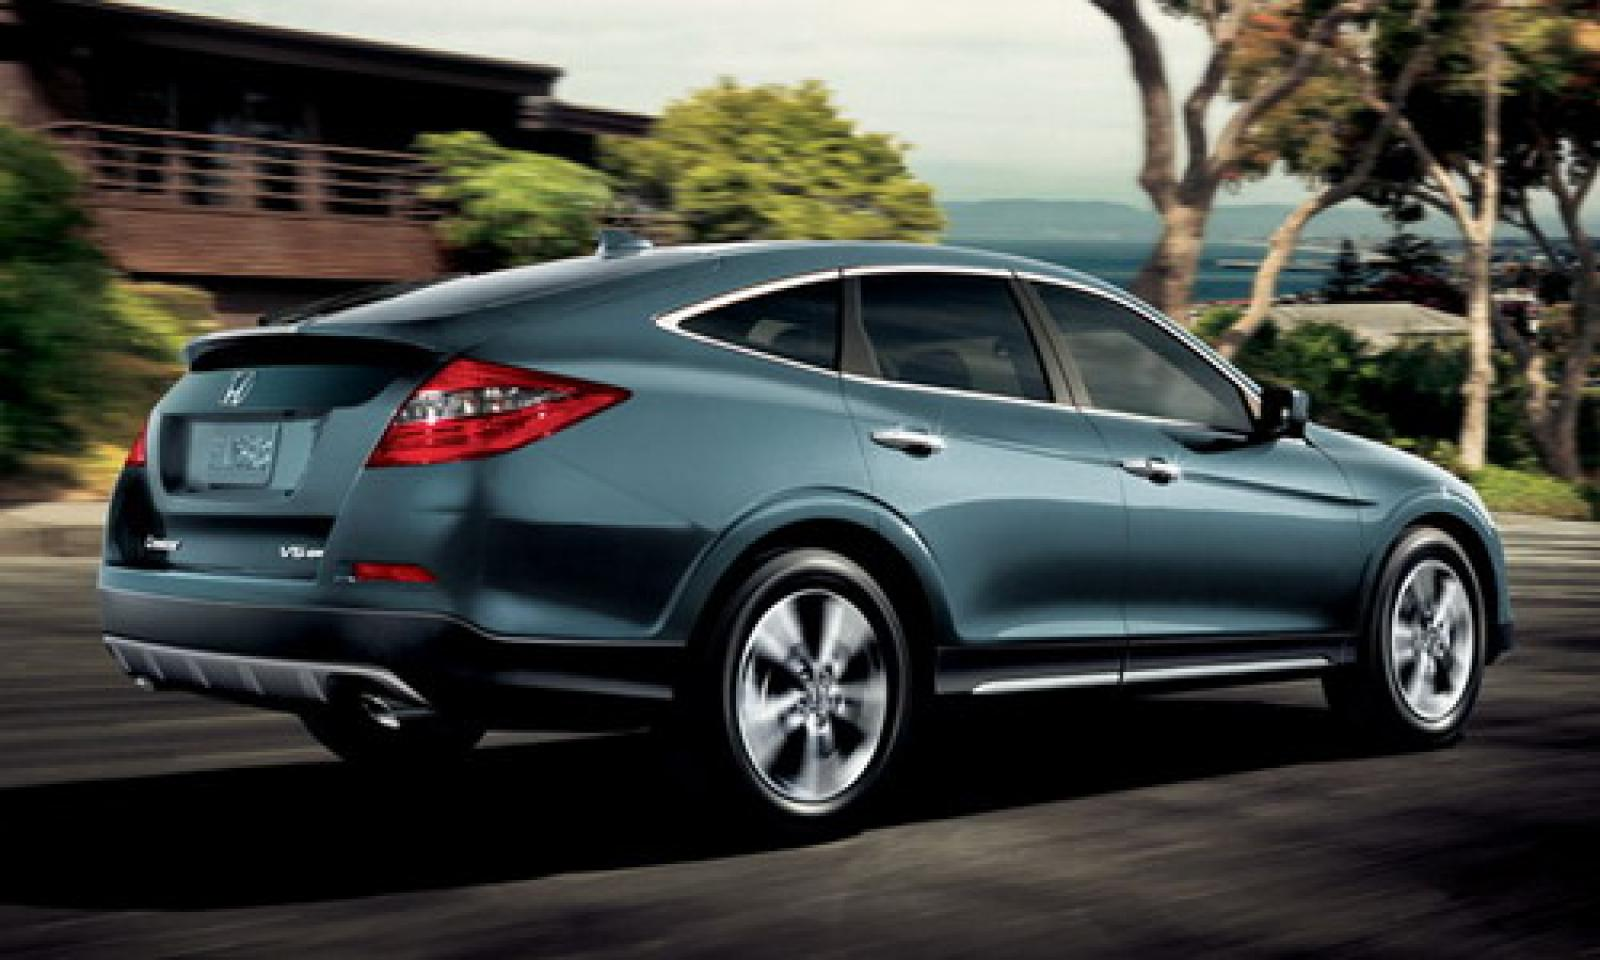 2015 Honda Crosstour 2017 2018 Best Cars Reviews